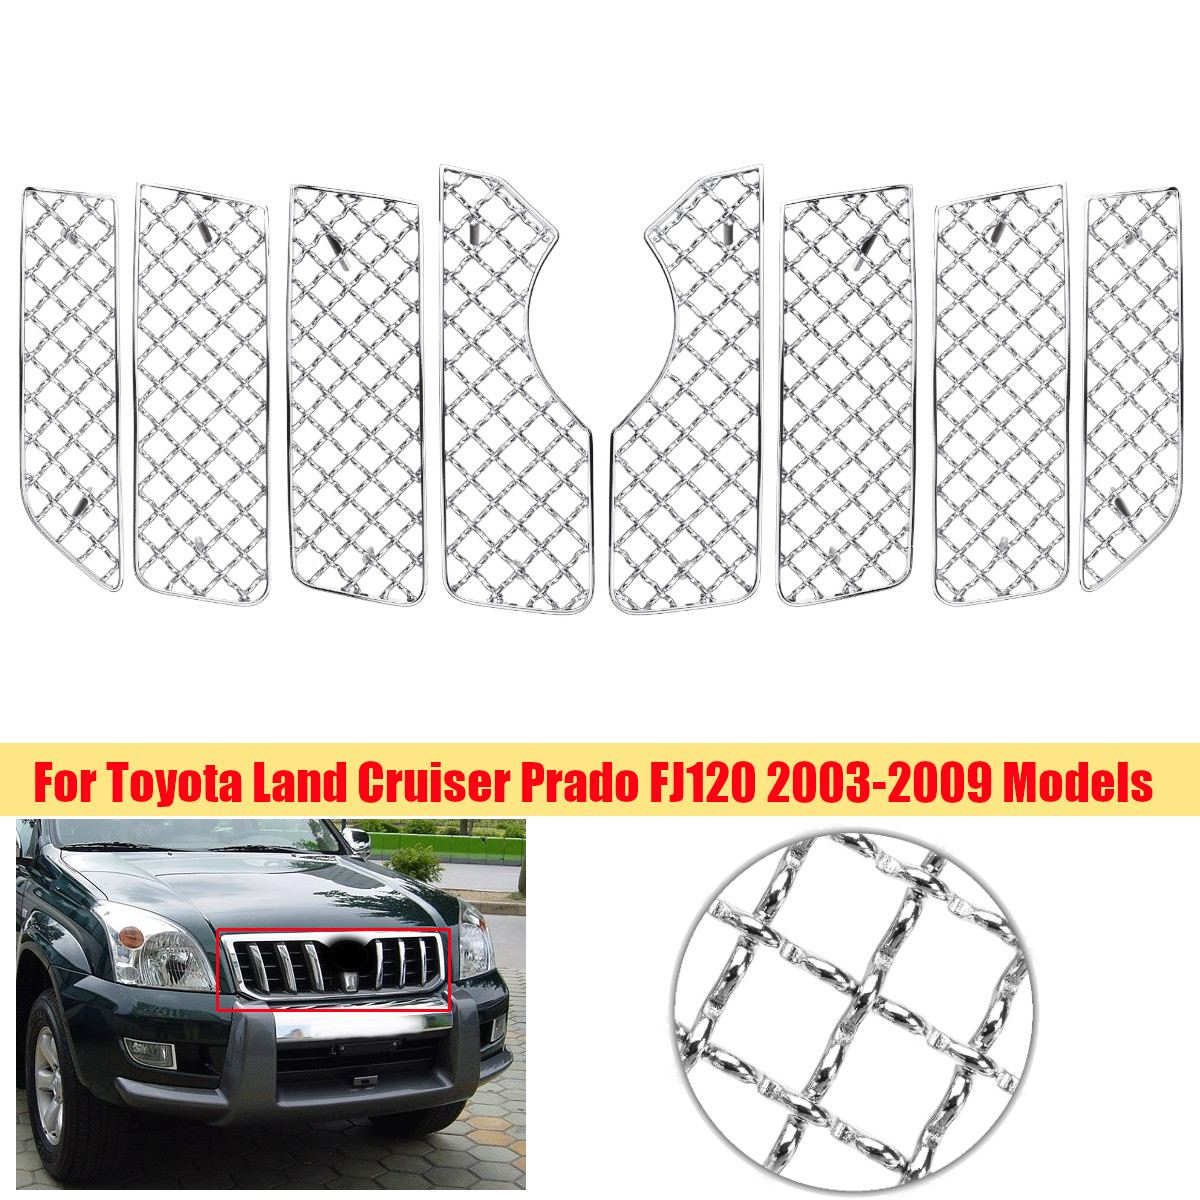 8Pcs Set Car Front Insect Screening Mesh Net Grille For Toyota Land Cruiser Prado For FJ